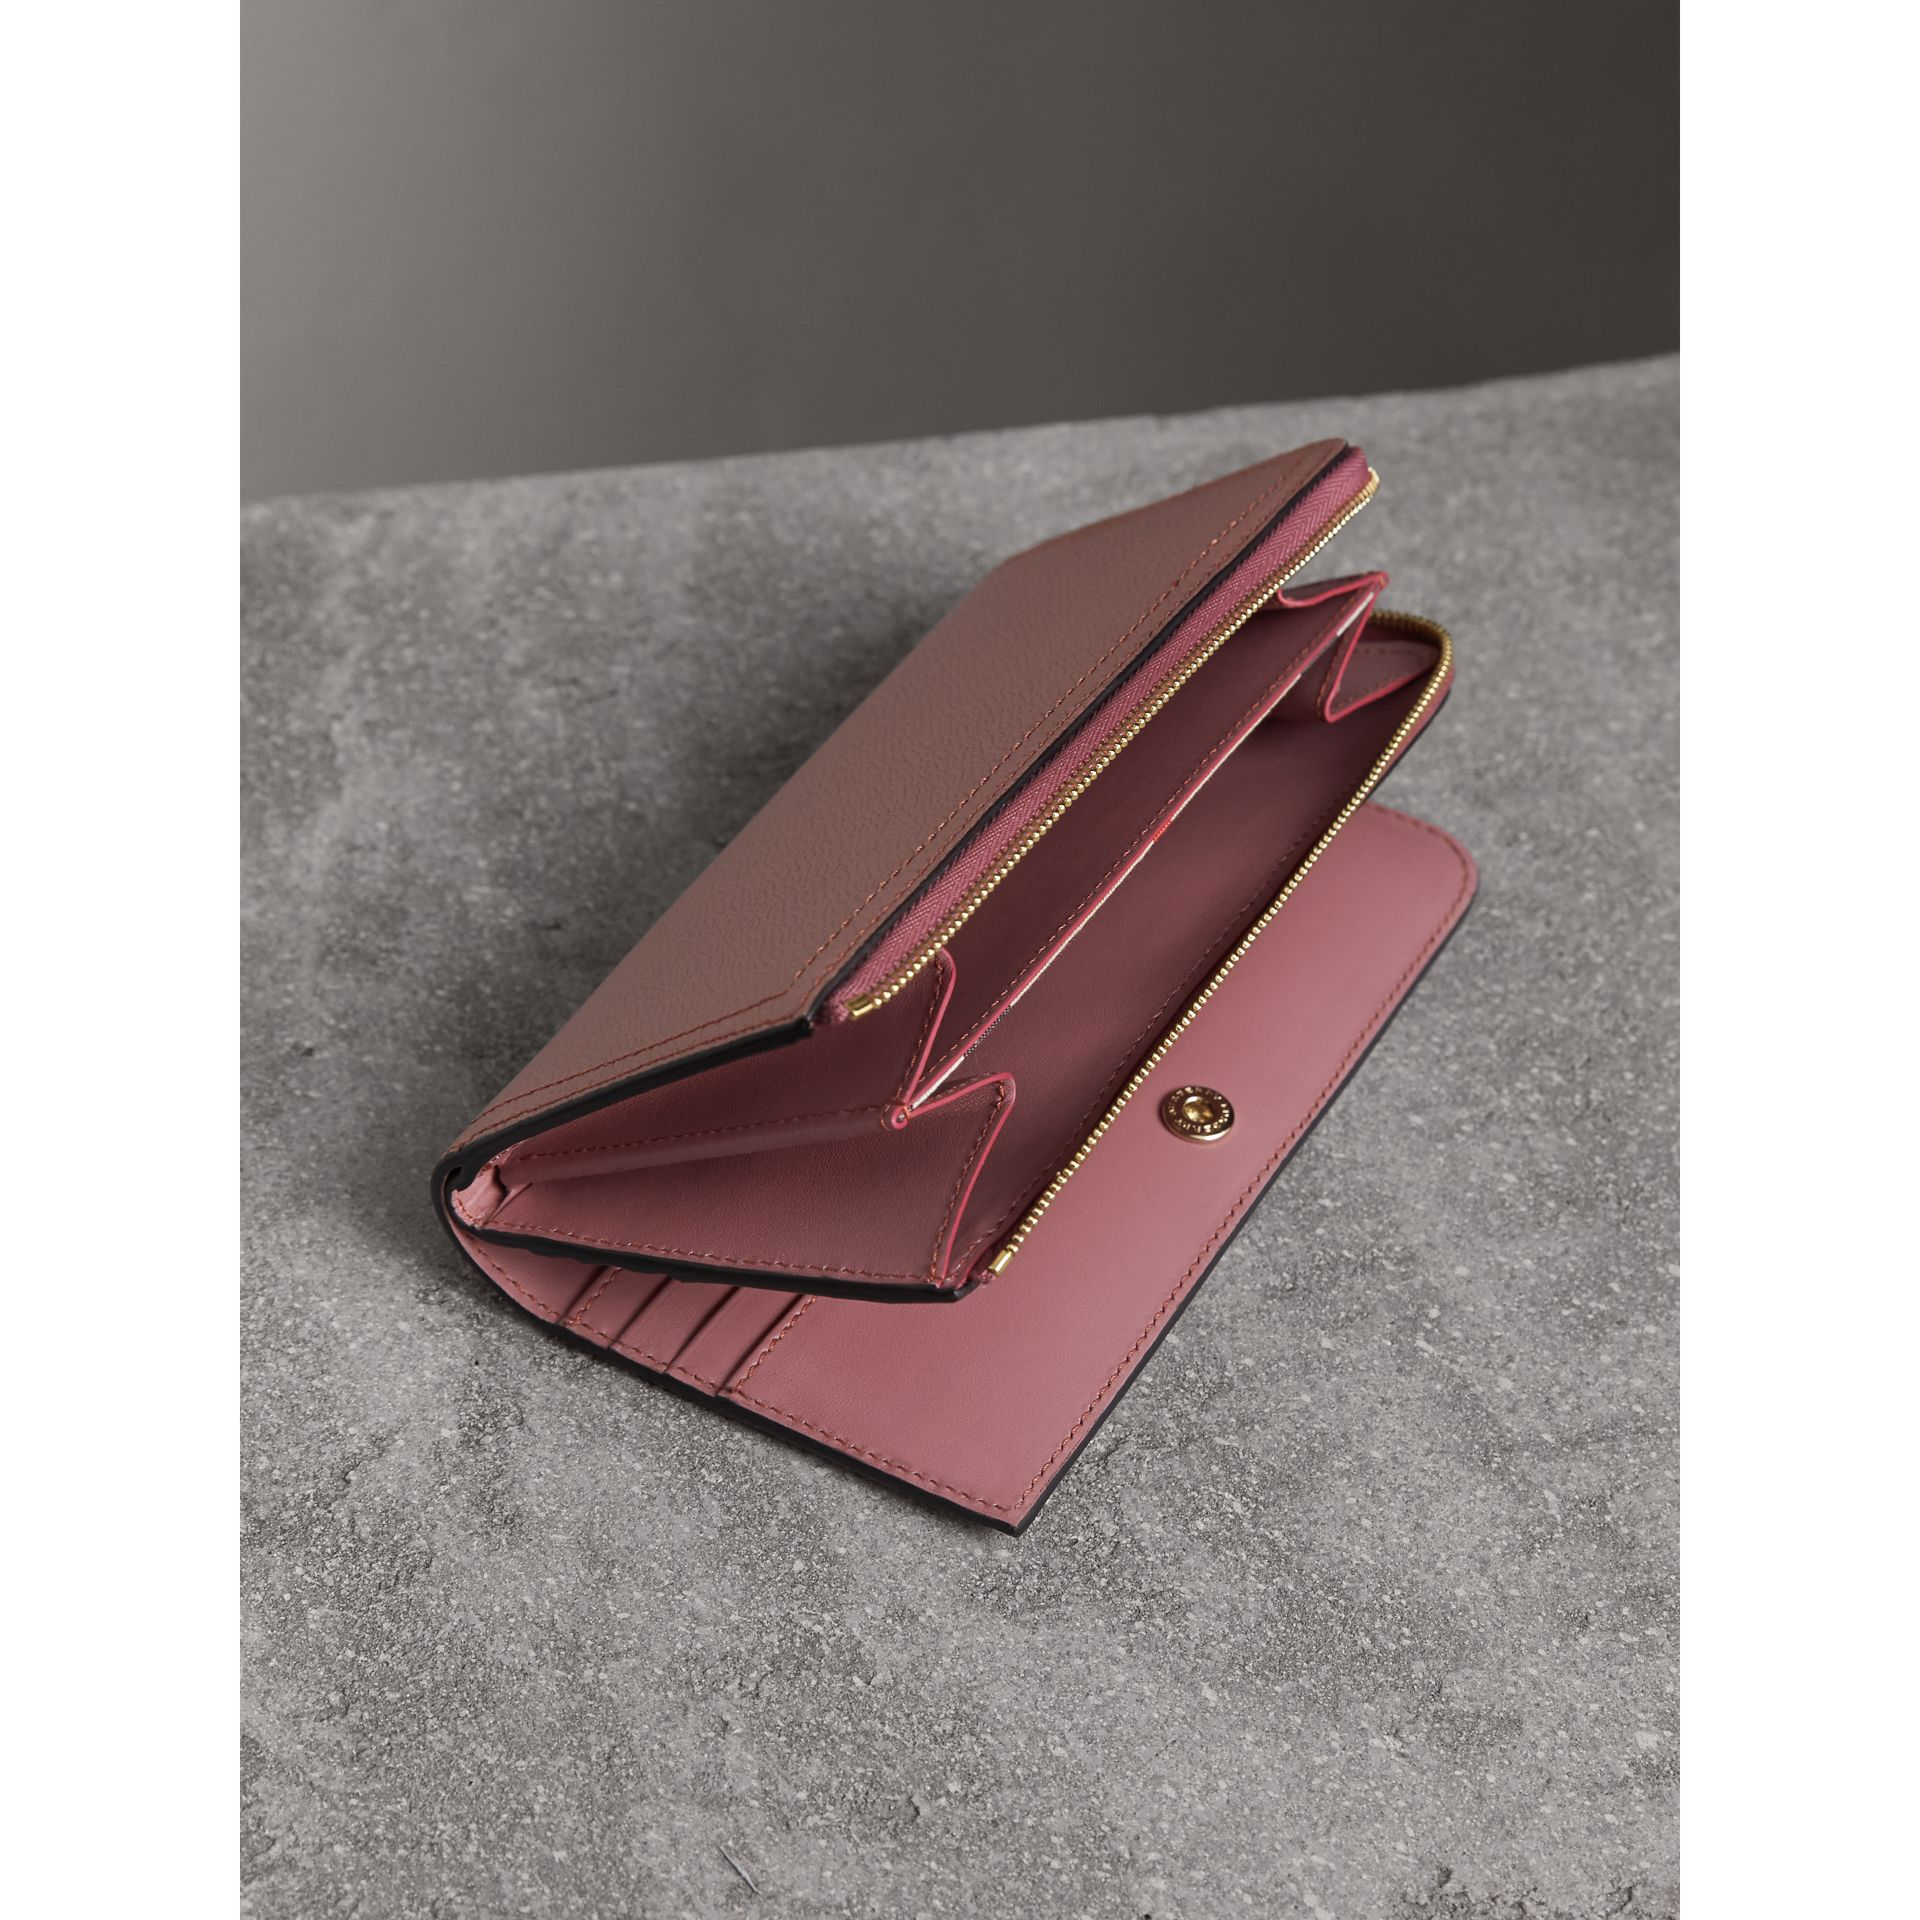 Grainy Leather Ziparound Wallet in Dusty Pink - Women | Burberry - gallery image 4